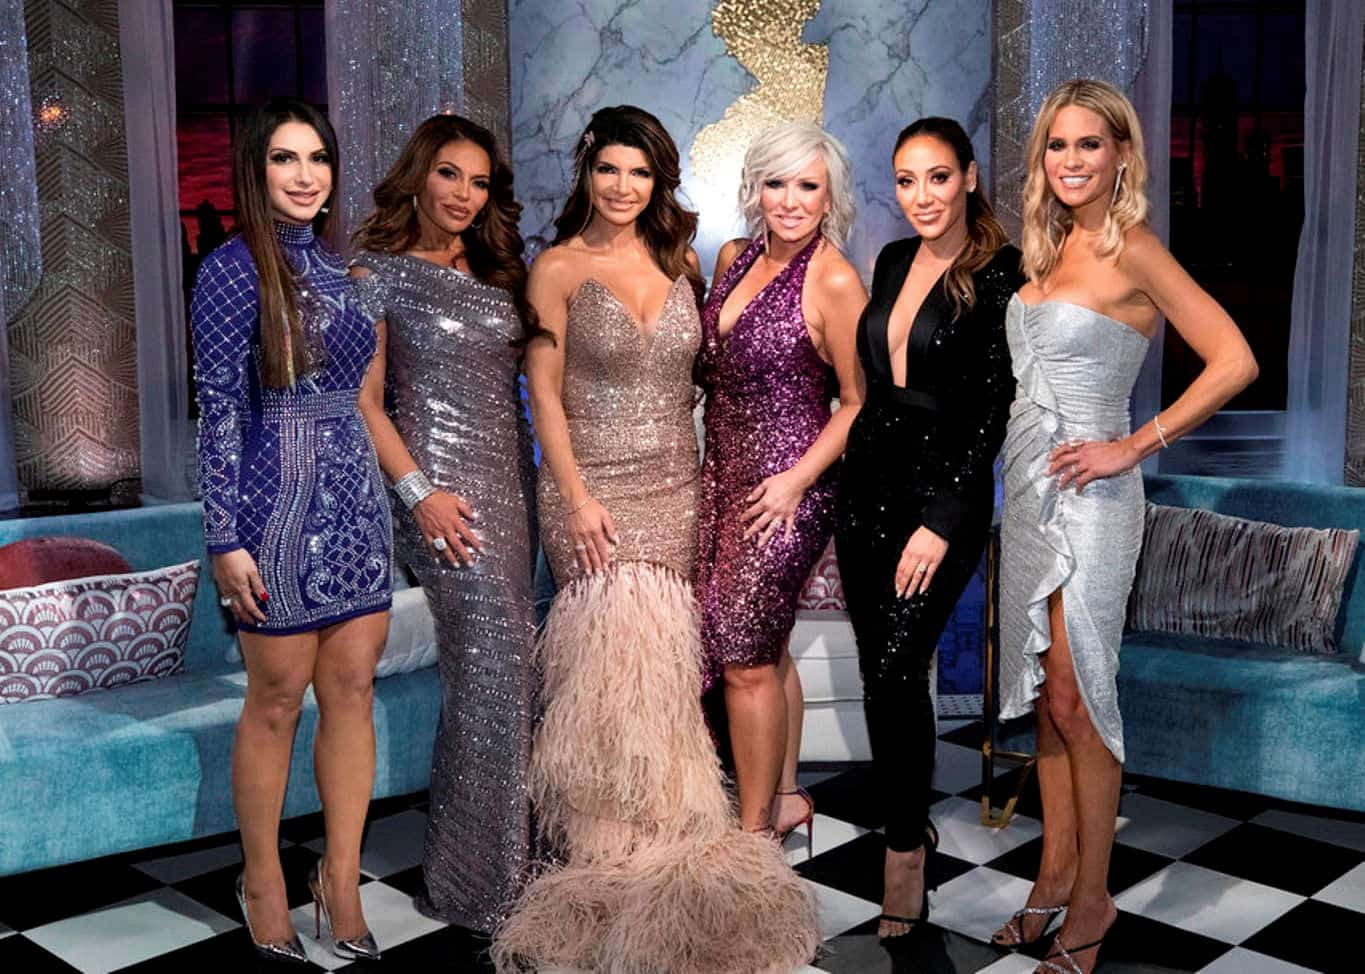 REPORT: Filming on the 'RHONJ' Season 11 Has Been Halted Amid Coronavirus Fears